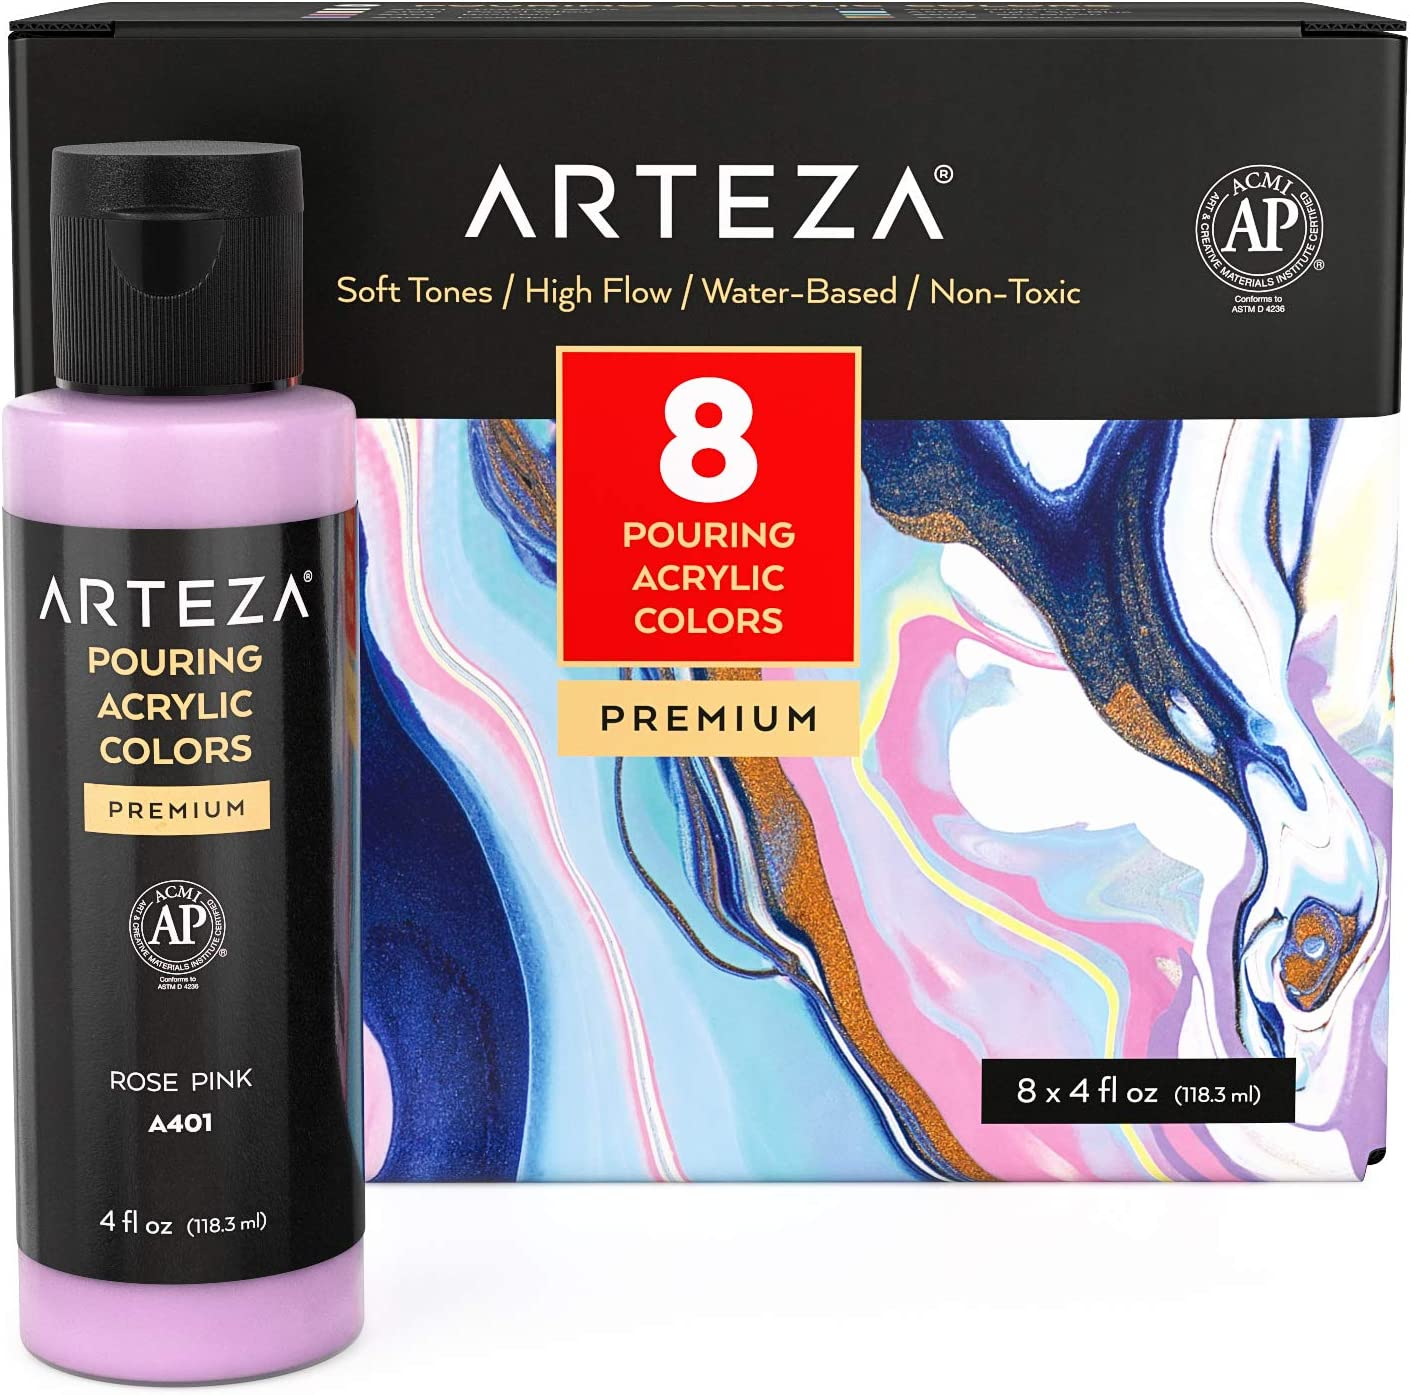 Arteza Acrylic Pouring Paint Set, 4 oz Bottles, Set of 8 Pastel Colors, High-Flow Acrylic Paint, No Mixing Needed, Paint for Pouring on Canvas, Glass, Paper, Wood, Tile and Stones